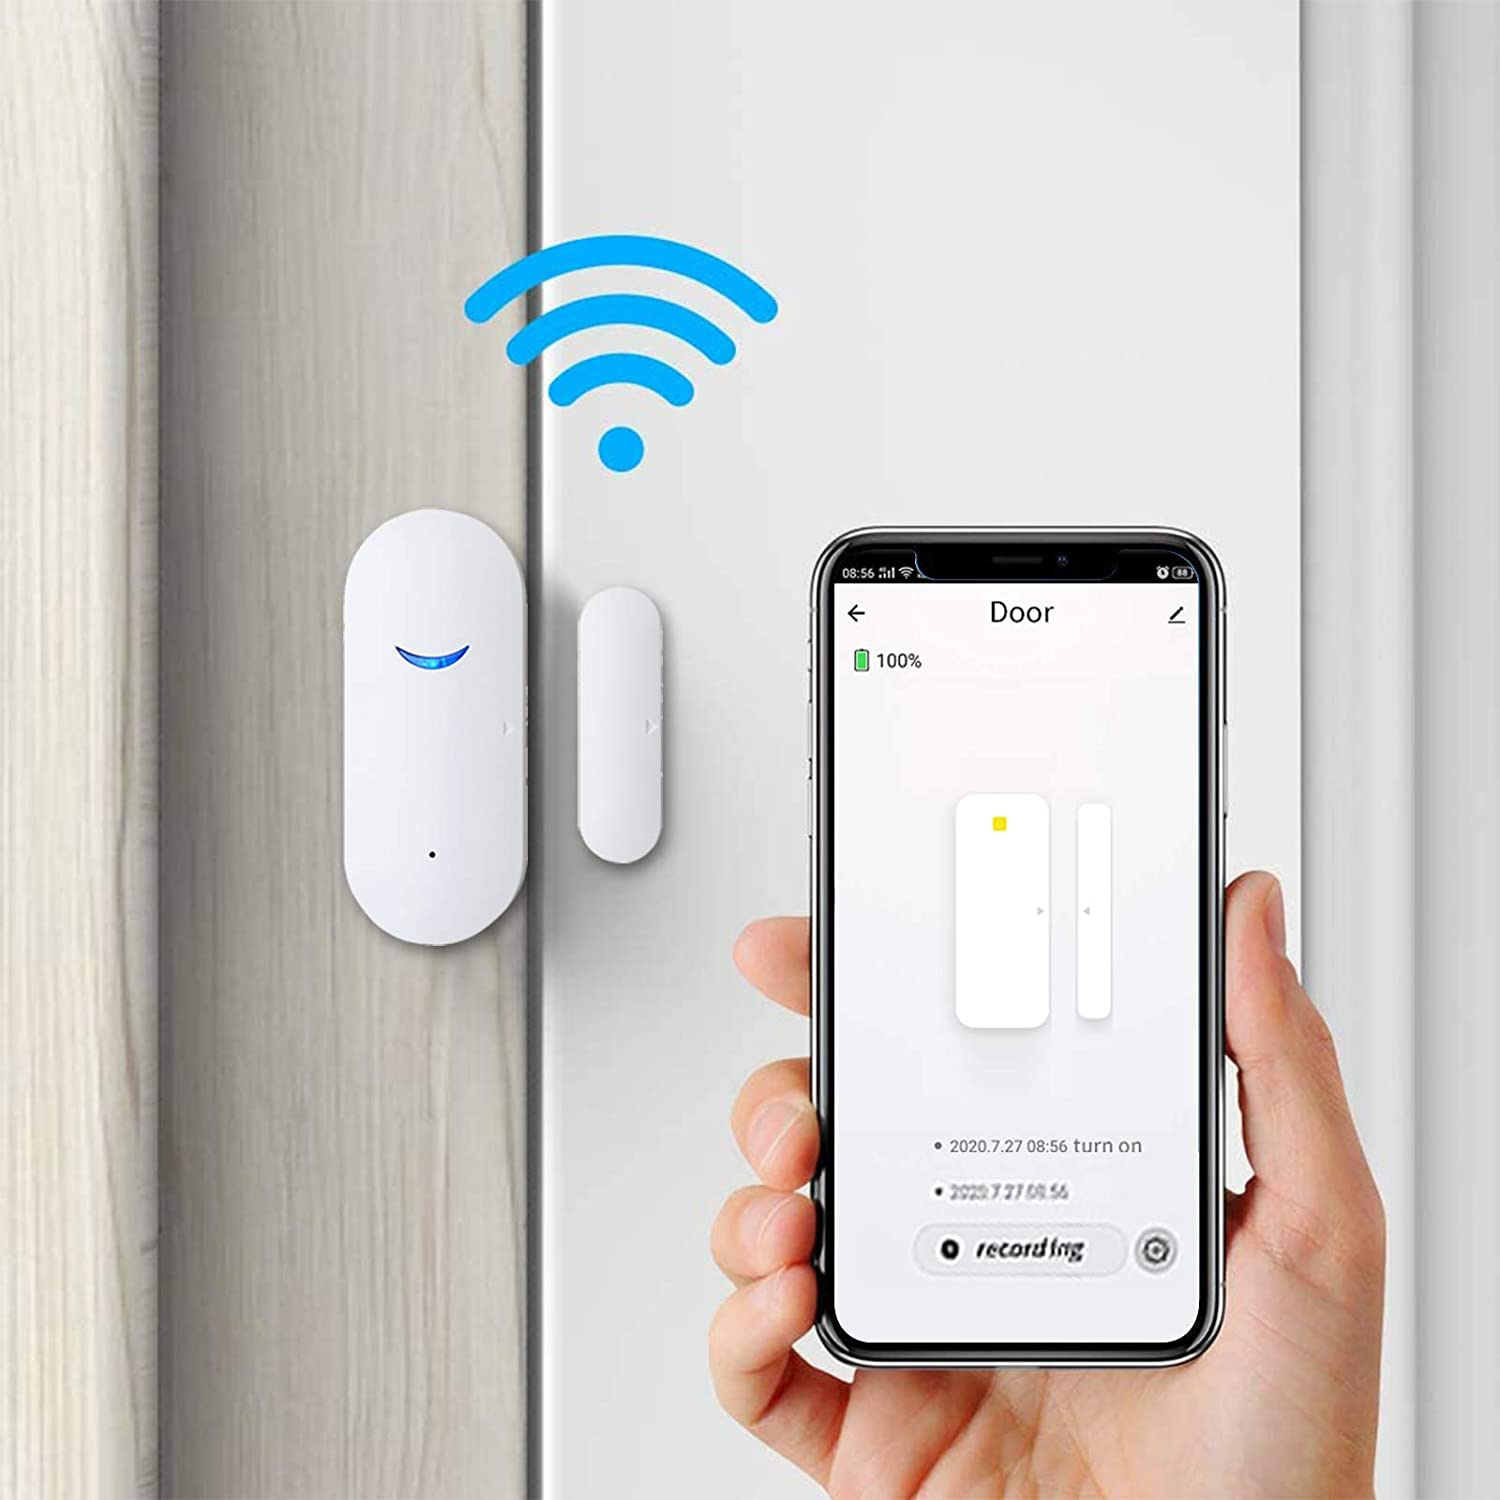 3 Pack WiFi Door Sensor Detector, Smart Wireless Window Sensor Real-time Alarm Compatible with Alexa Google Assistant, Home Security Door Open Contact Sensor for Bussiness Burglar Alert